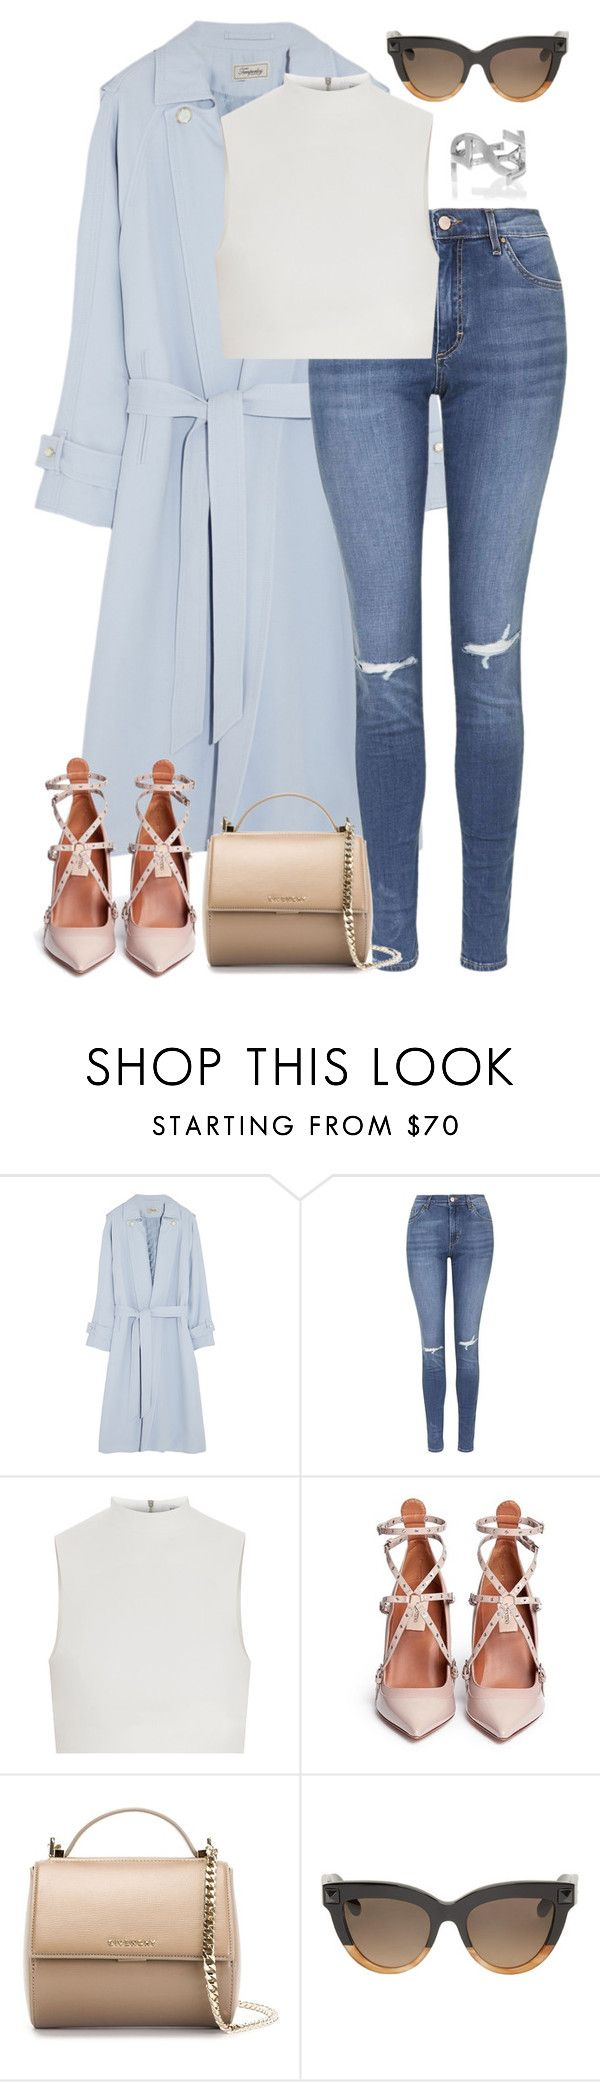 """""""Untitled #1830"""" by namelessale ❤ liked on Polyvore featuring Temperley London, Topshop, Elizabeth and James, Valentino, Givenchy and Yves Saint Laurent"""